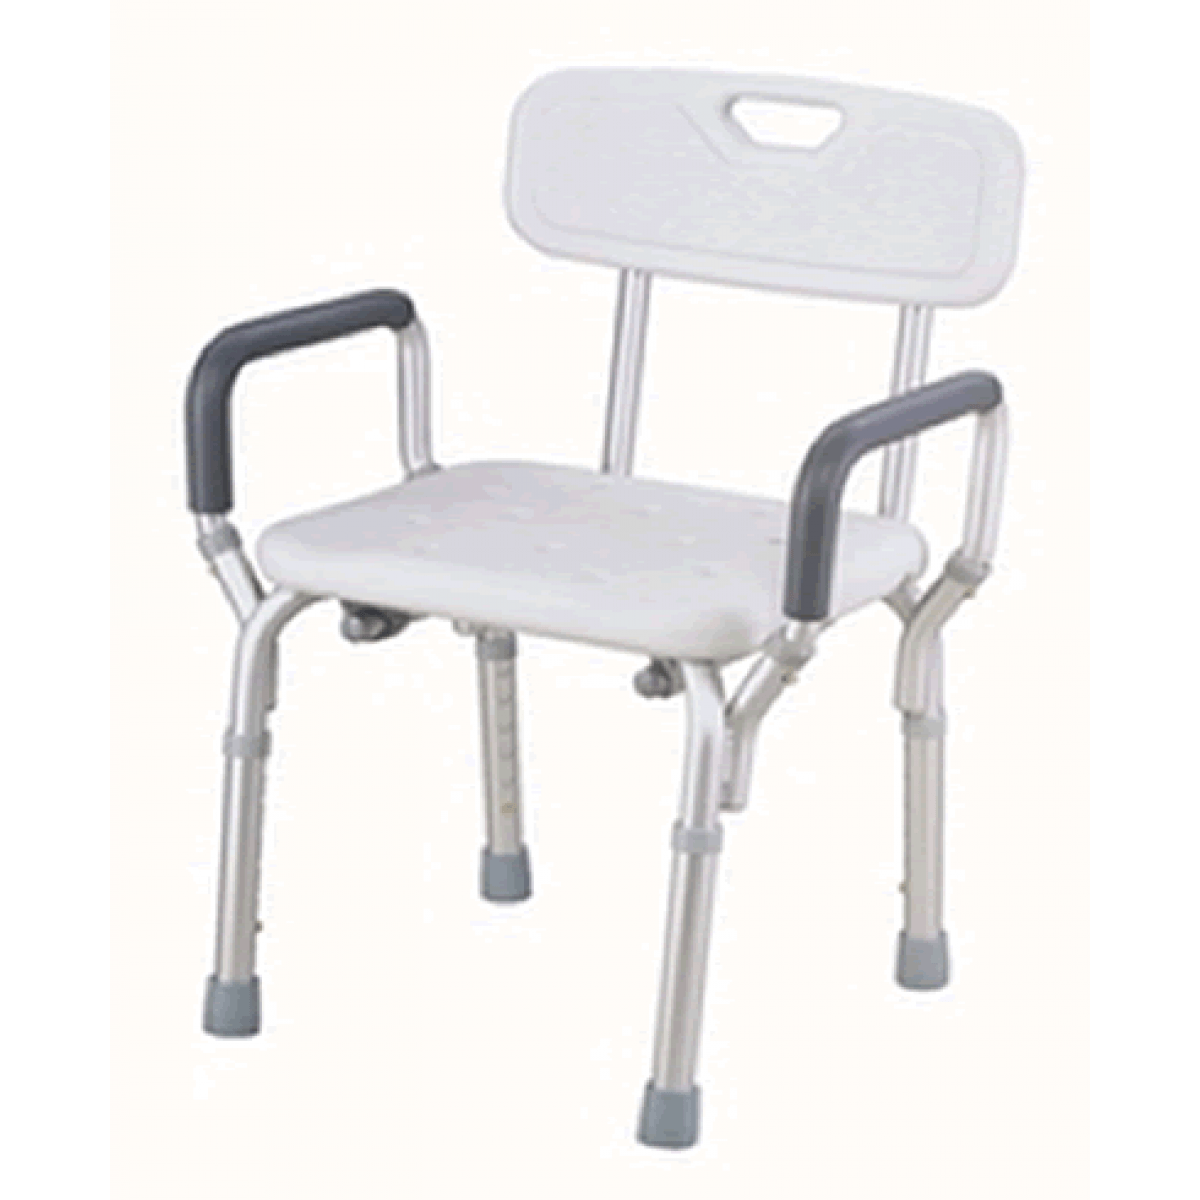 Chair For Bathtub Merits Shower Chair Bath Bench With Arms On Sale With